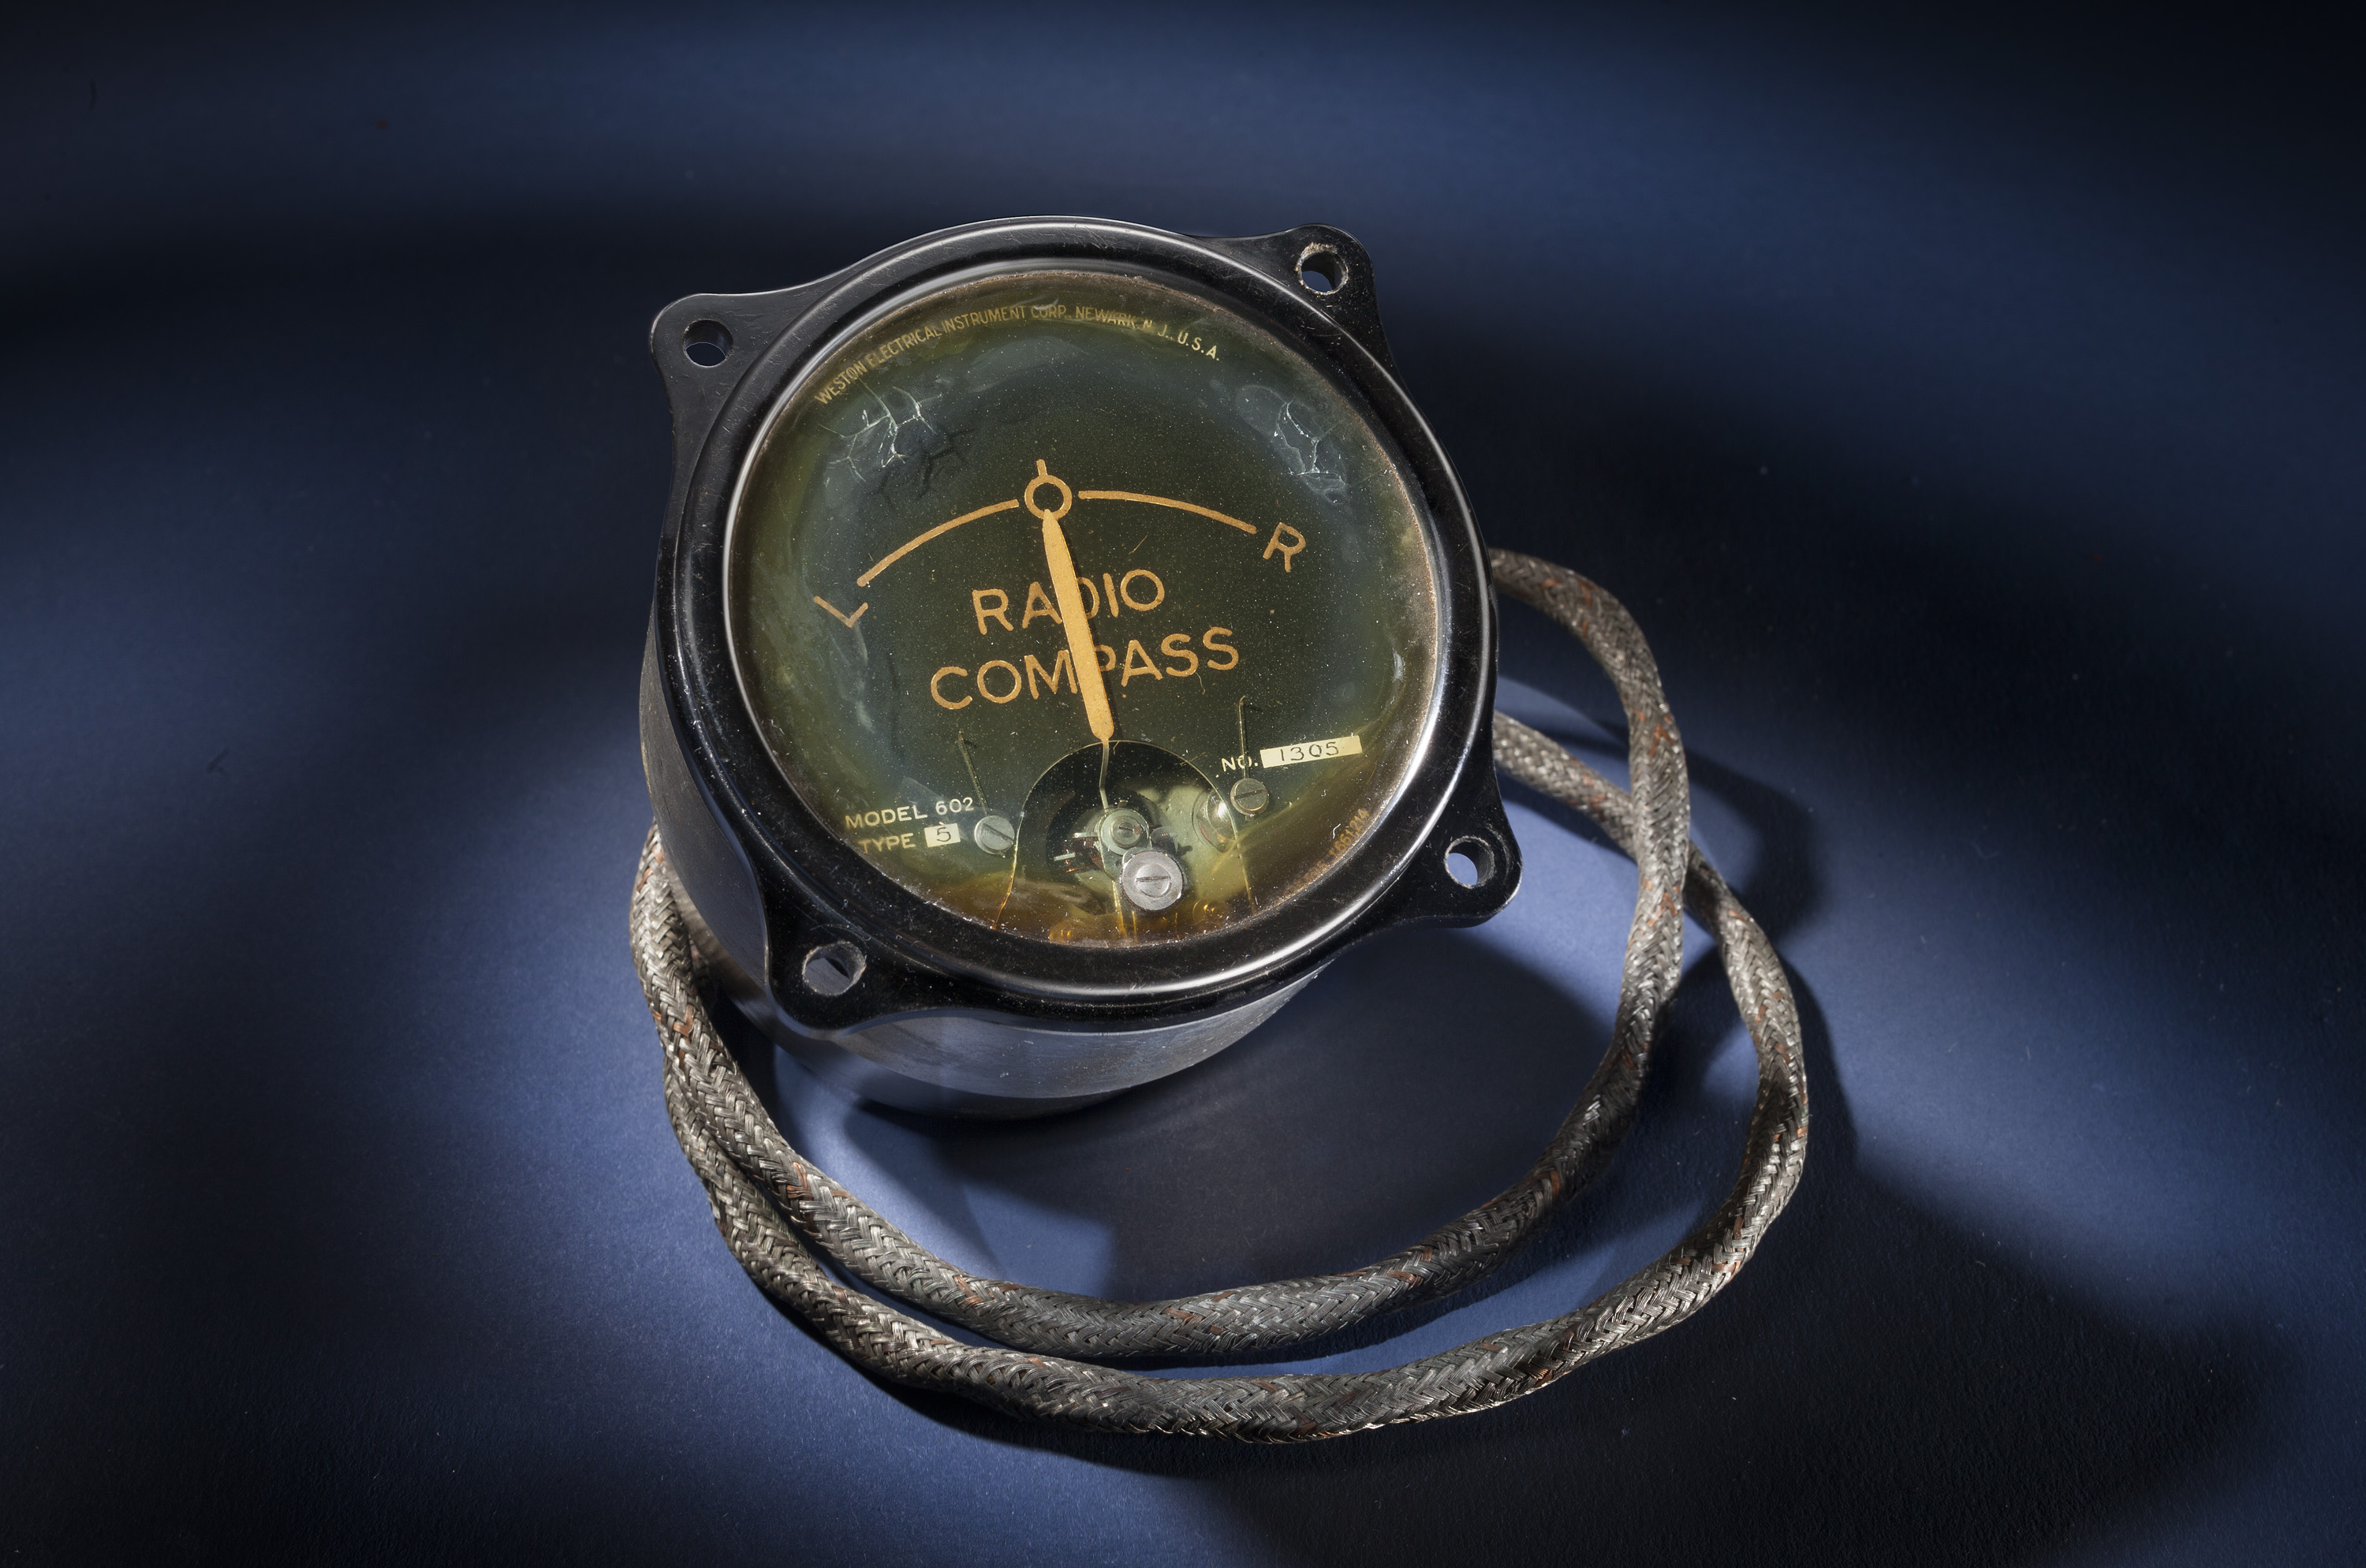 Westport Radio Compass Indicator